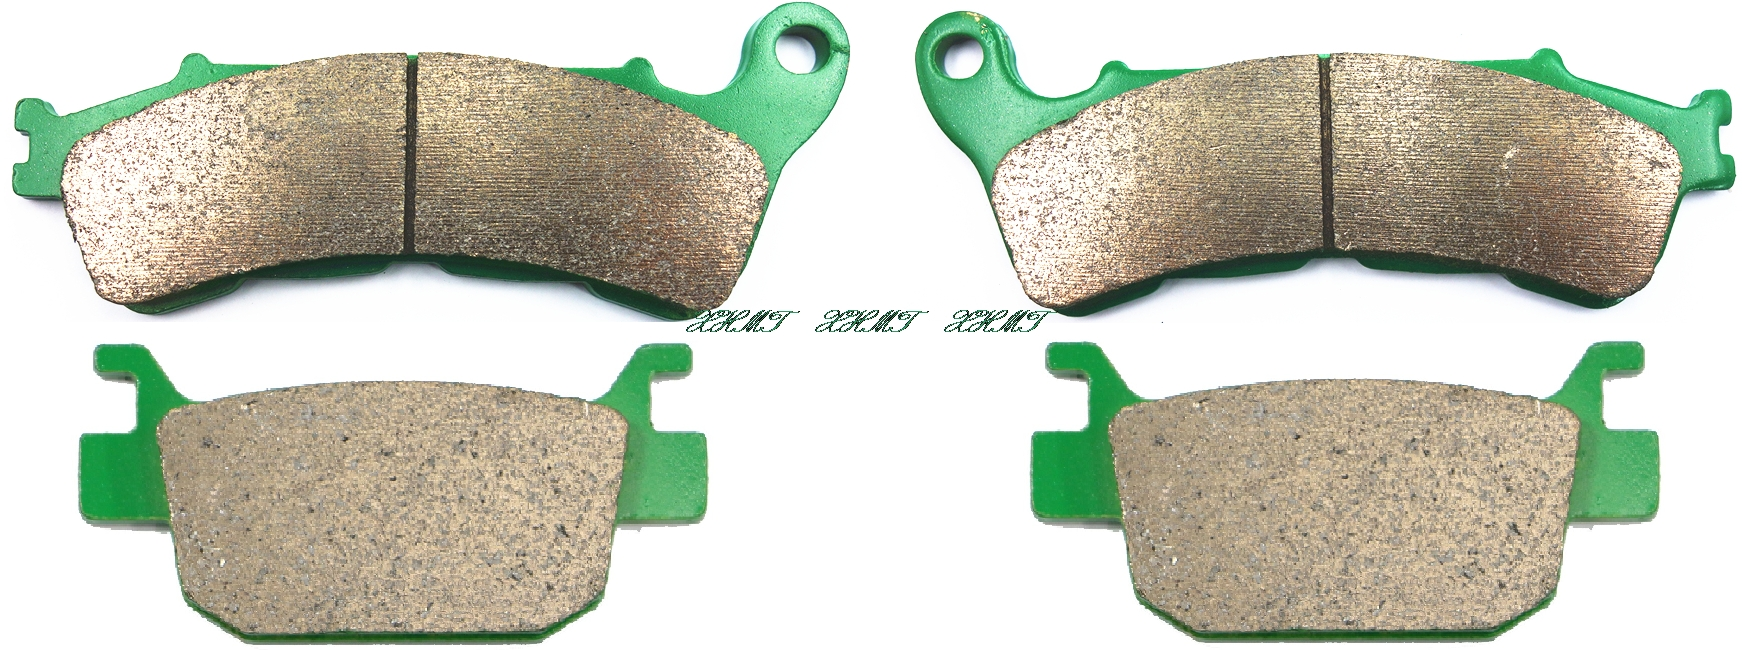 Disc Brake Pads Set for HONDA NSS250 NSS 250 FORZA EX X 2005 06-08/ SH300 SH 300 i 2006 2007 2008 2009 2010 2011 2012 2013 2014 motocross dirt bike enduro off road wheel rim spoke shrouds skins covers for yamaha yzf r6 2005 2006 2007 2008 2009 2010 2011 20